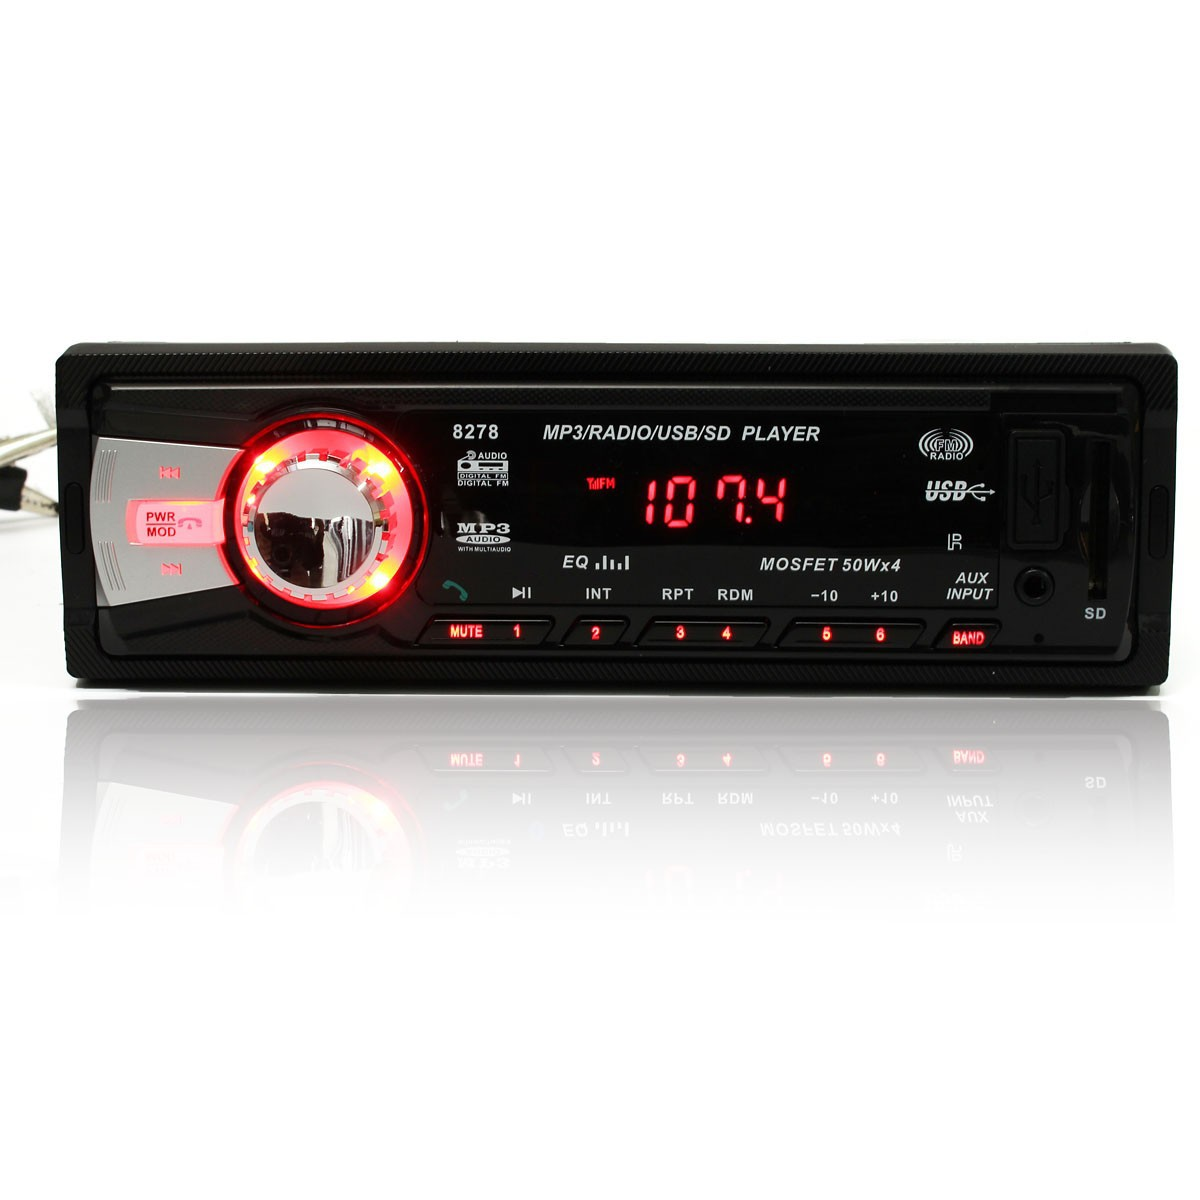 bluetooth car audio stereo 1din mp3 radio player am fm aux input receiver sd usb export. Black Bedroom Furniture Sets. Home Design Ideas